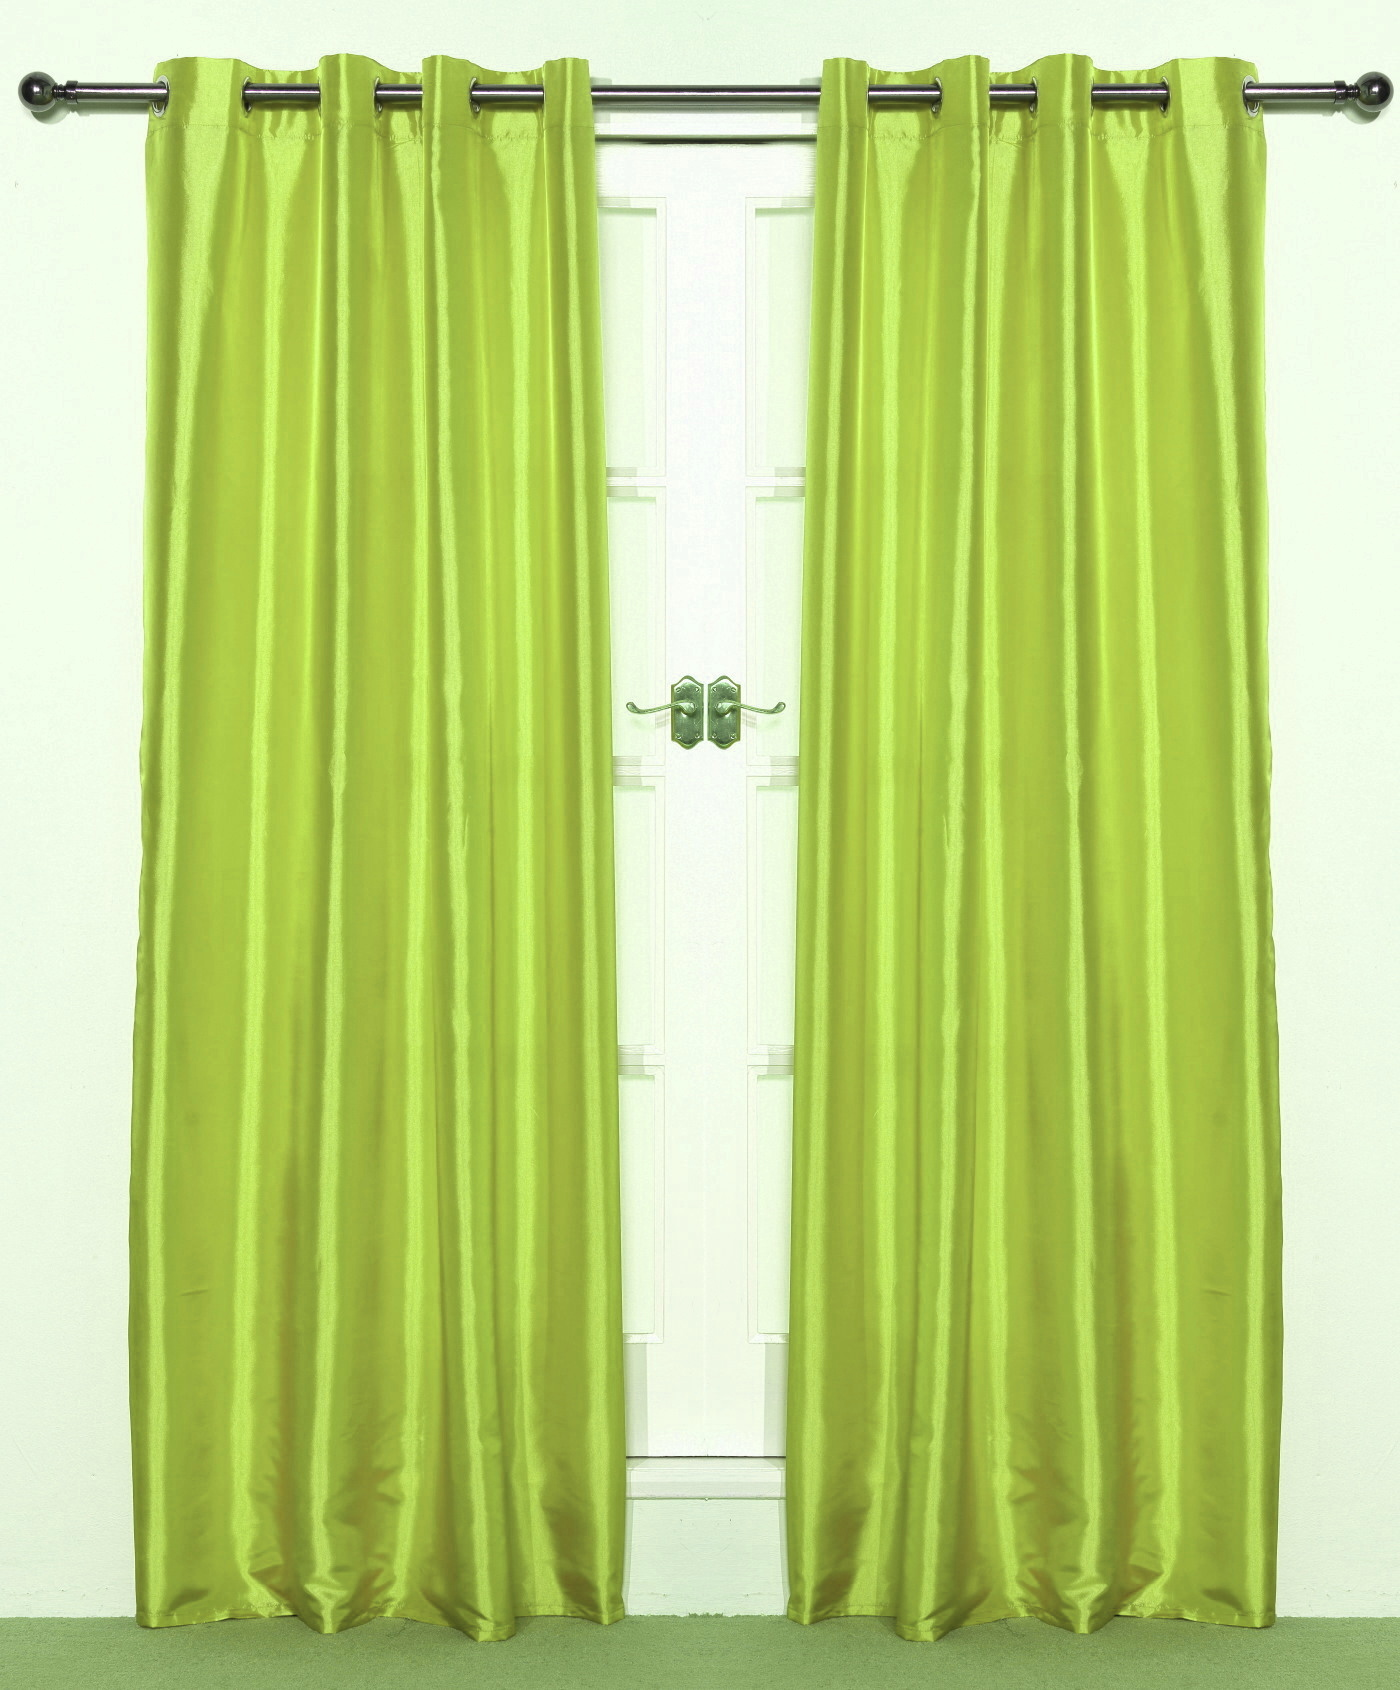 Pair of bright lime green taffeta eyelet curtains 55″ wide x 72″ drop ready made curtains